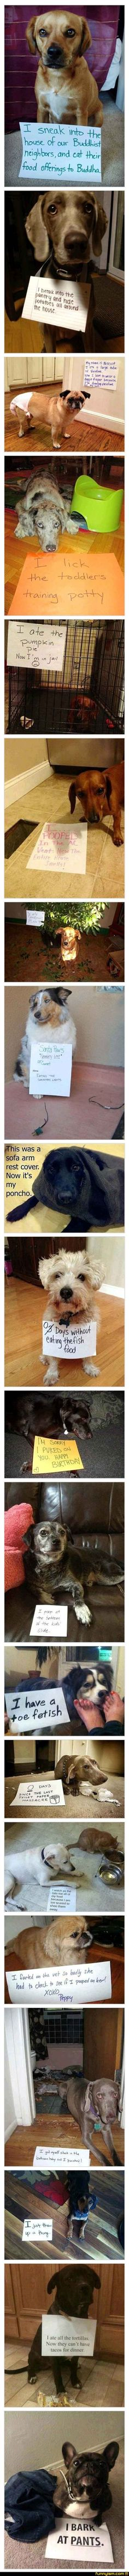 54 Ideas Funny Pictures Of Animals Hilarious Dog Shaming New Funny Memes, Funny Memes About Girls, Funny Girl Quotes, Cute Memes, Funny Stuff, Funny Babies, Funny Kids, Funny Cute, Hilarious